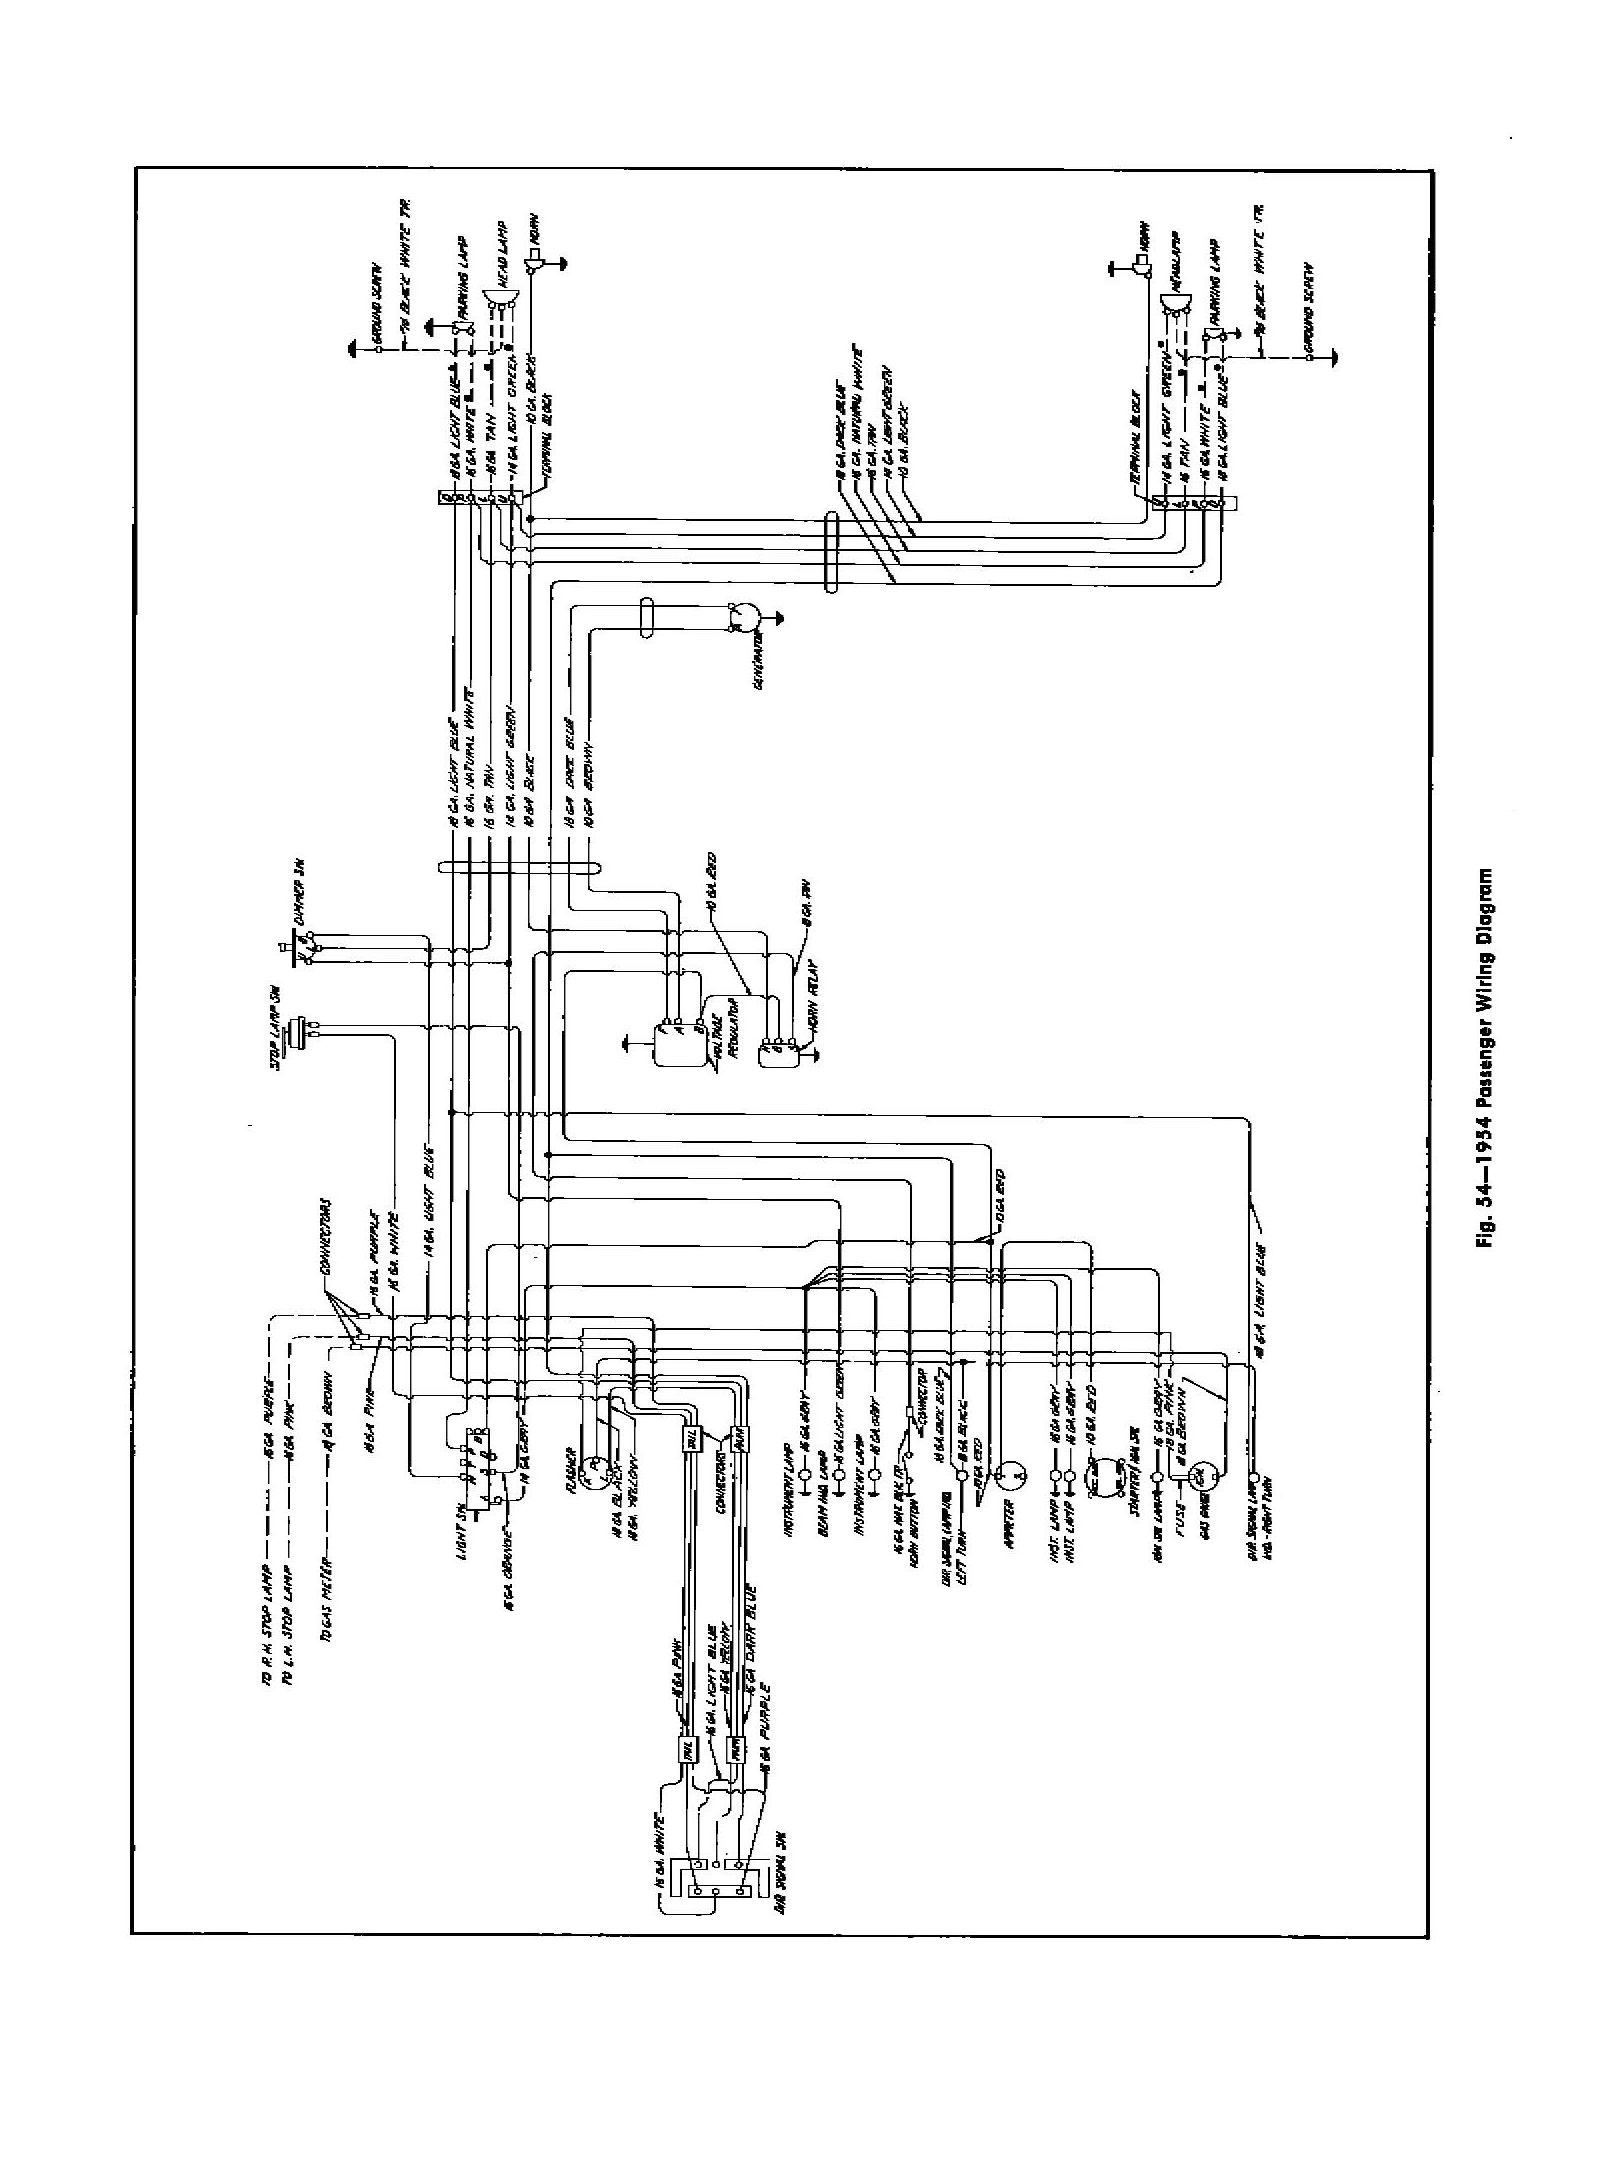 amp gauge wiring diagram for 1954 chevy